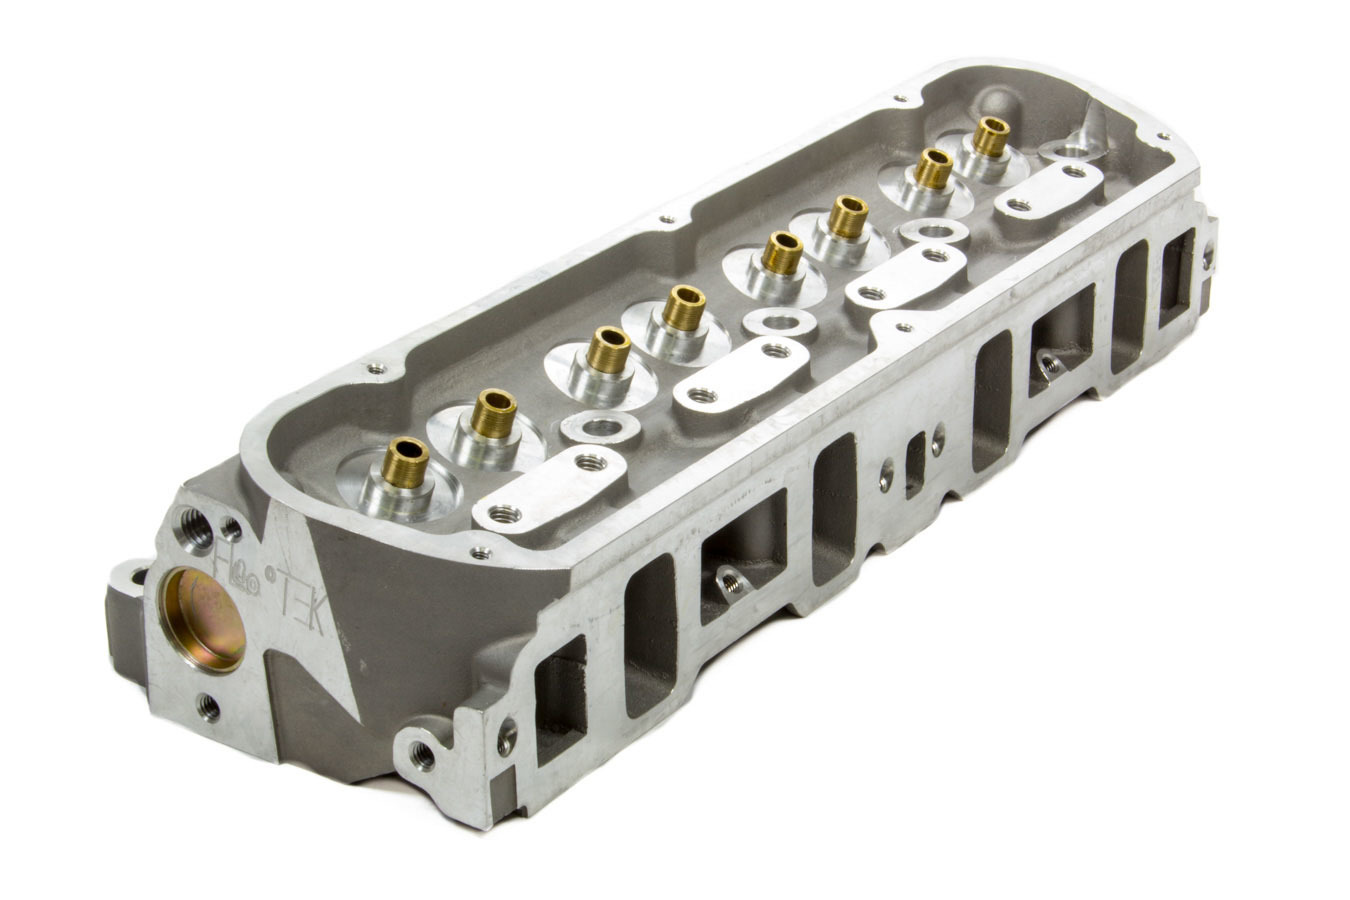 Flo-Tek 203500 Cylinder Head, Bare, 1.940 / 1.550 in Valves, 180 cc Intake, 58 cc Chamber, Aluminum, Small Block Ford, Each